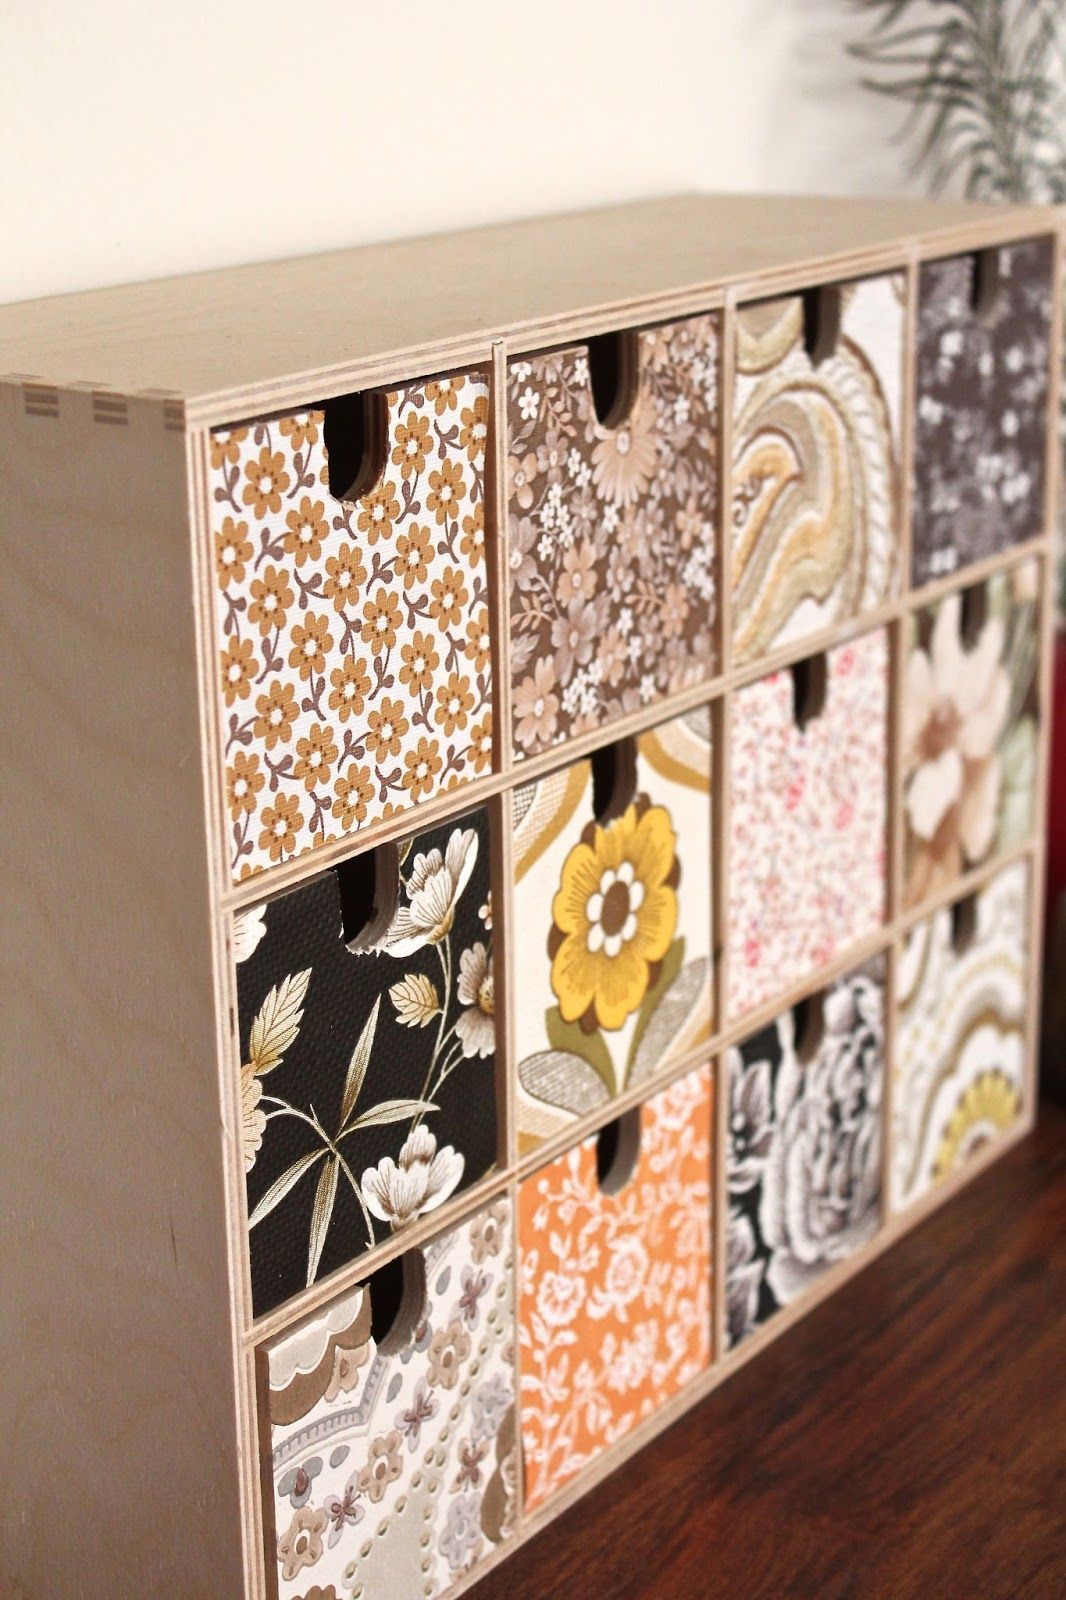 Muebles Nikea Campello - A Moppe Box Is Transformed By With Vintage Wallpaper By [mjhdah]https://s-media-cache-ak0.pinimg.com/originals/6f/f8/e9/6ff8e950730498e121ee5239ff8c1bea.jpg